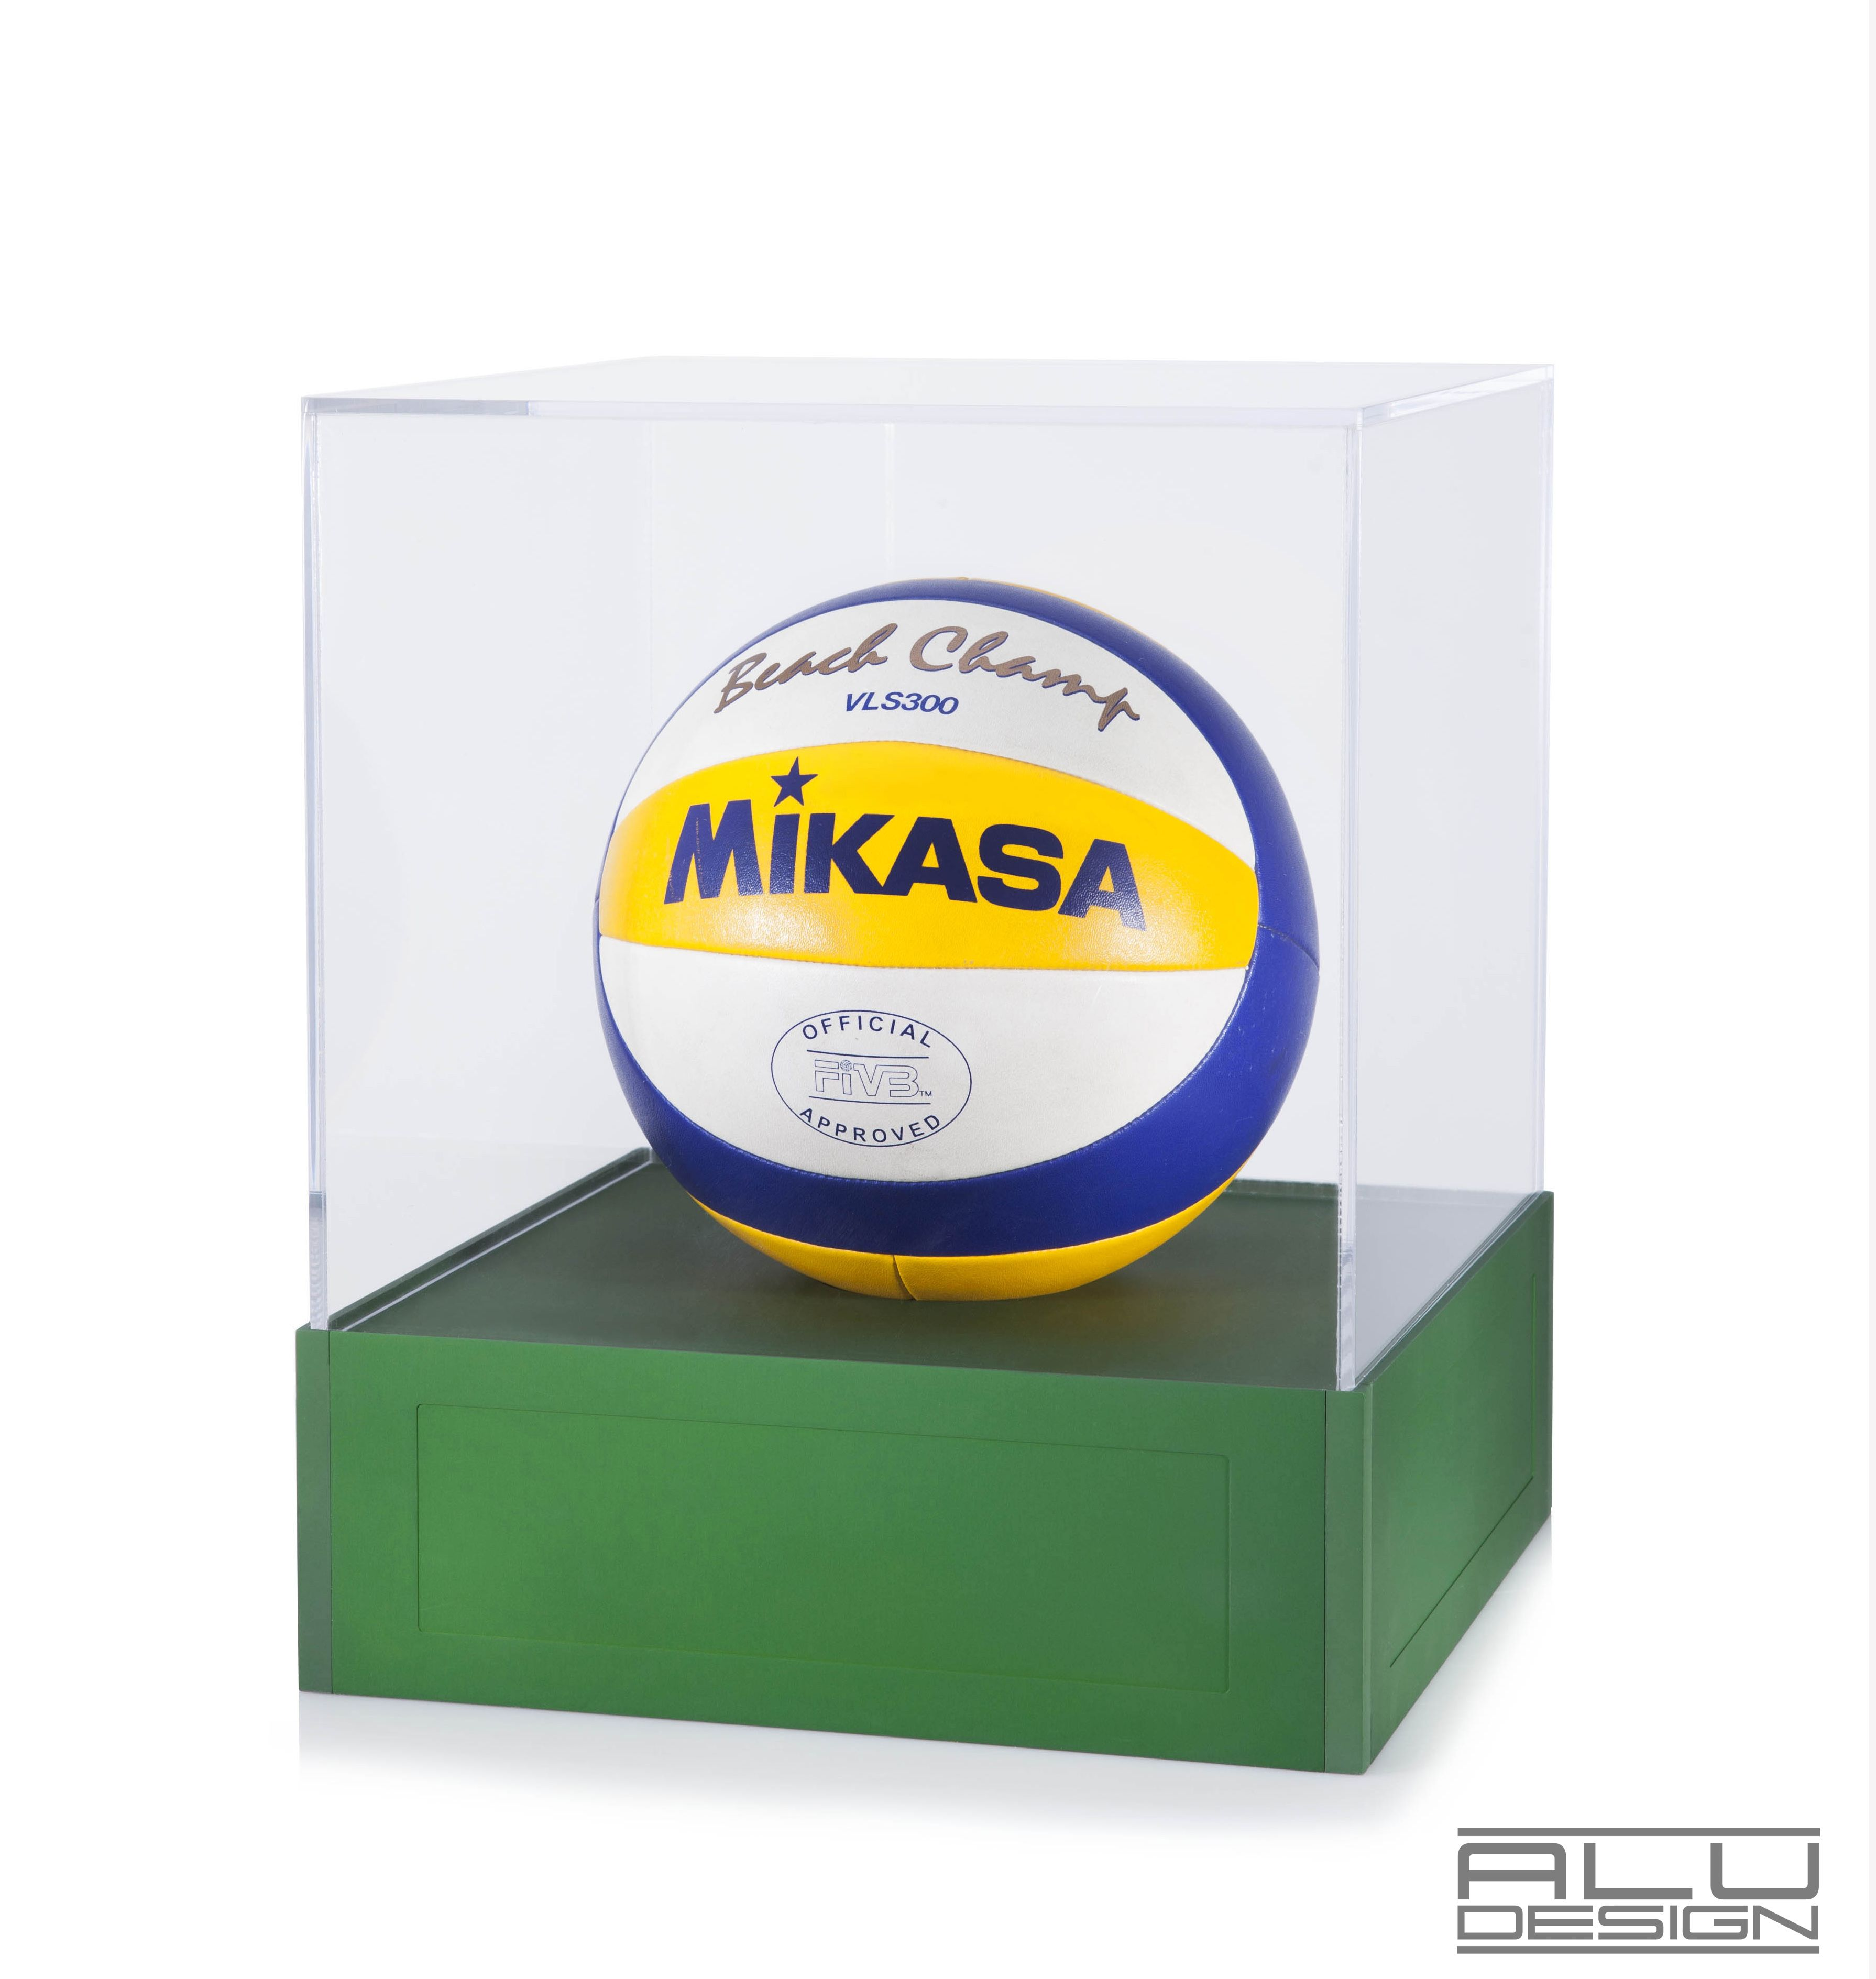 Luxury Beach Volleyball Display Case Flawless Design For Your Exclusive Collection Cnc Machined Anodized Aluminum Green Avail Design Display Case Trophy Case